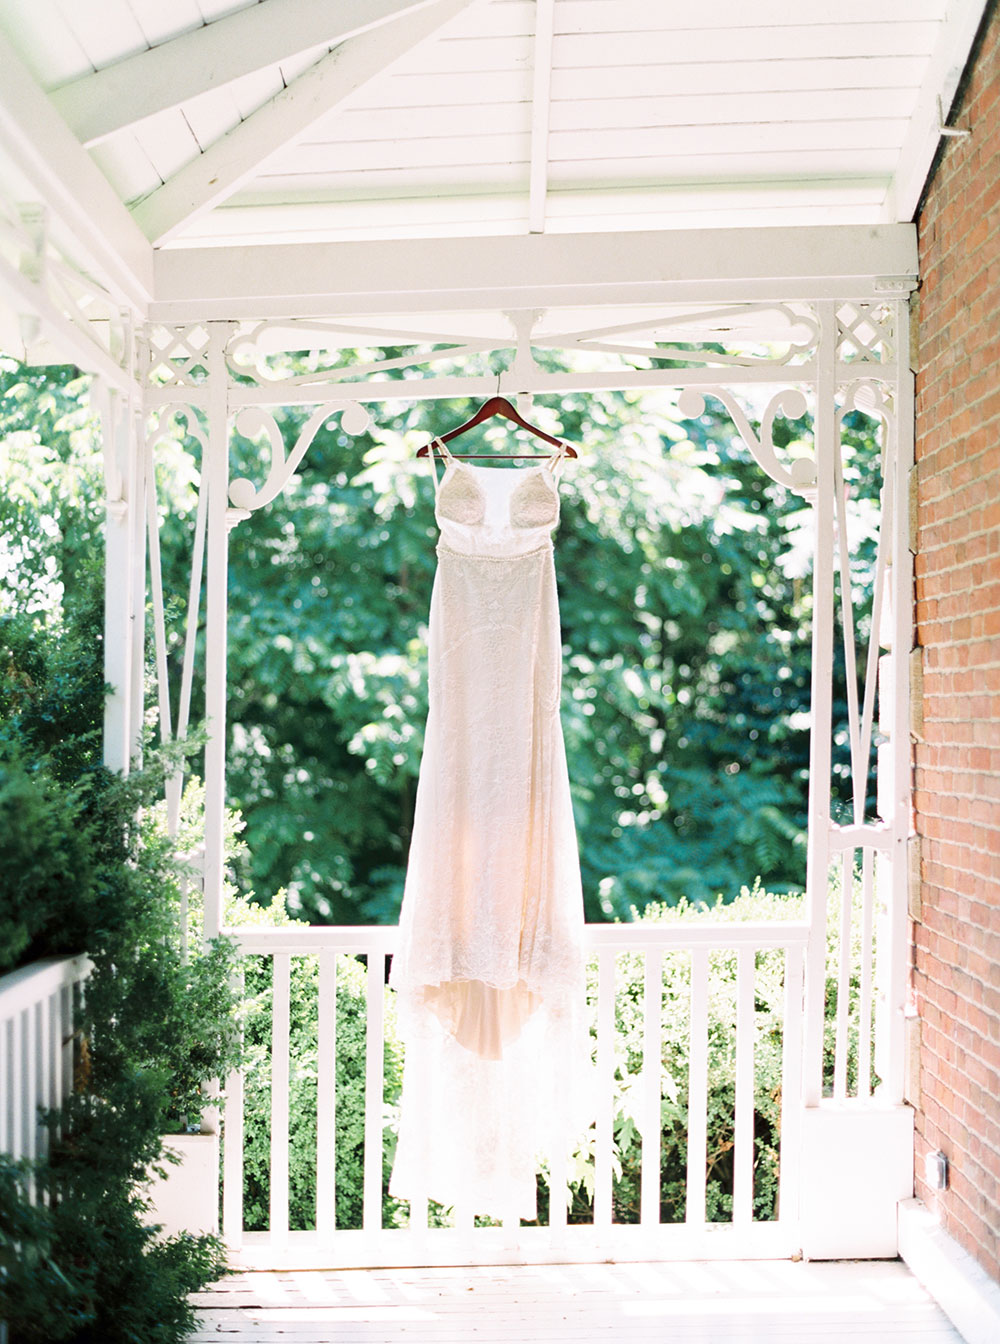 kurtz-orchards-wedding-gracewood-estate-niagara-on-the-lake-photo-by-katie-nicolle-photography-0001.JPG